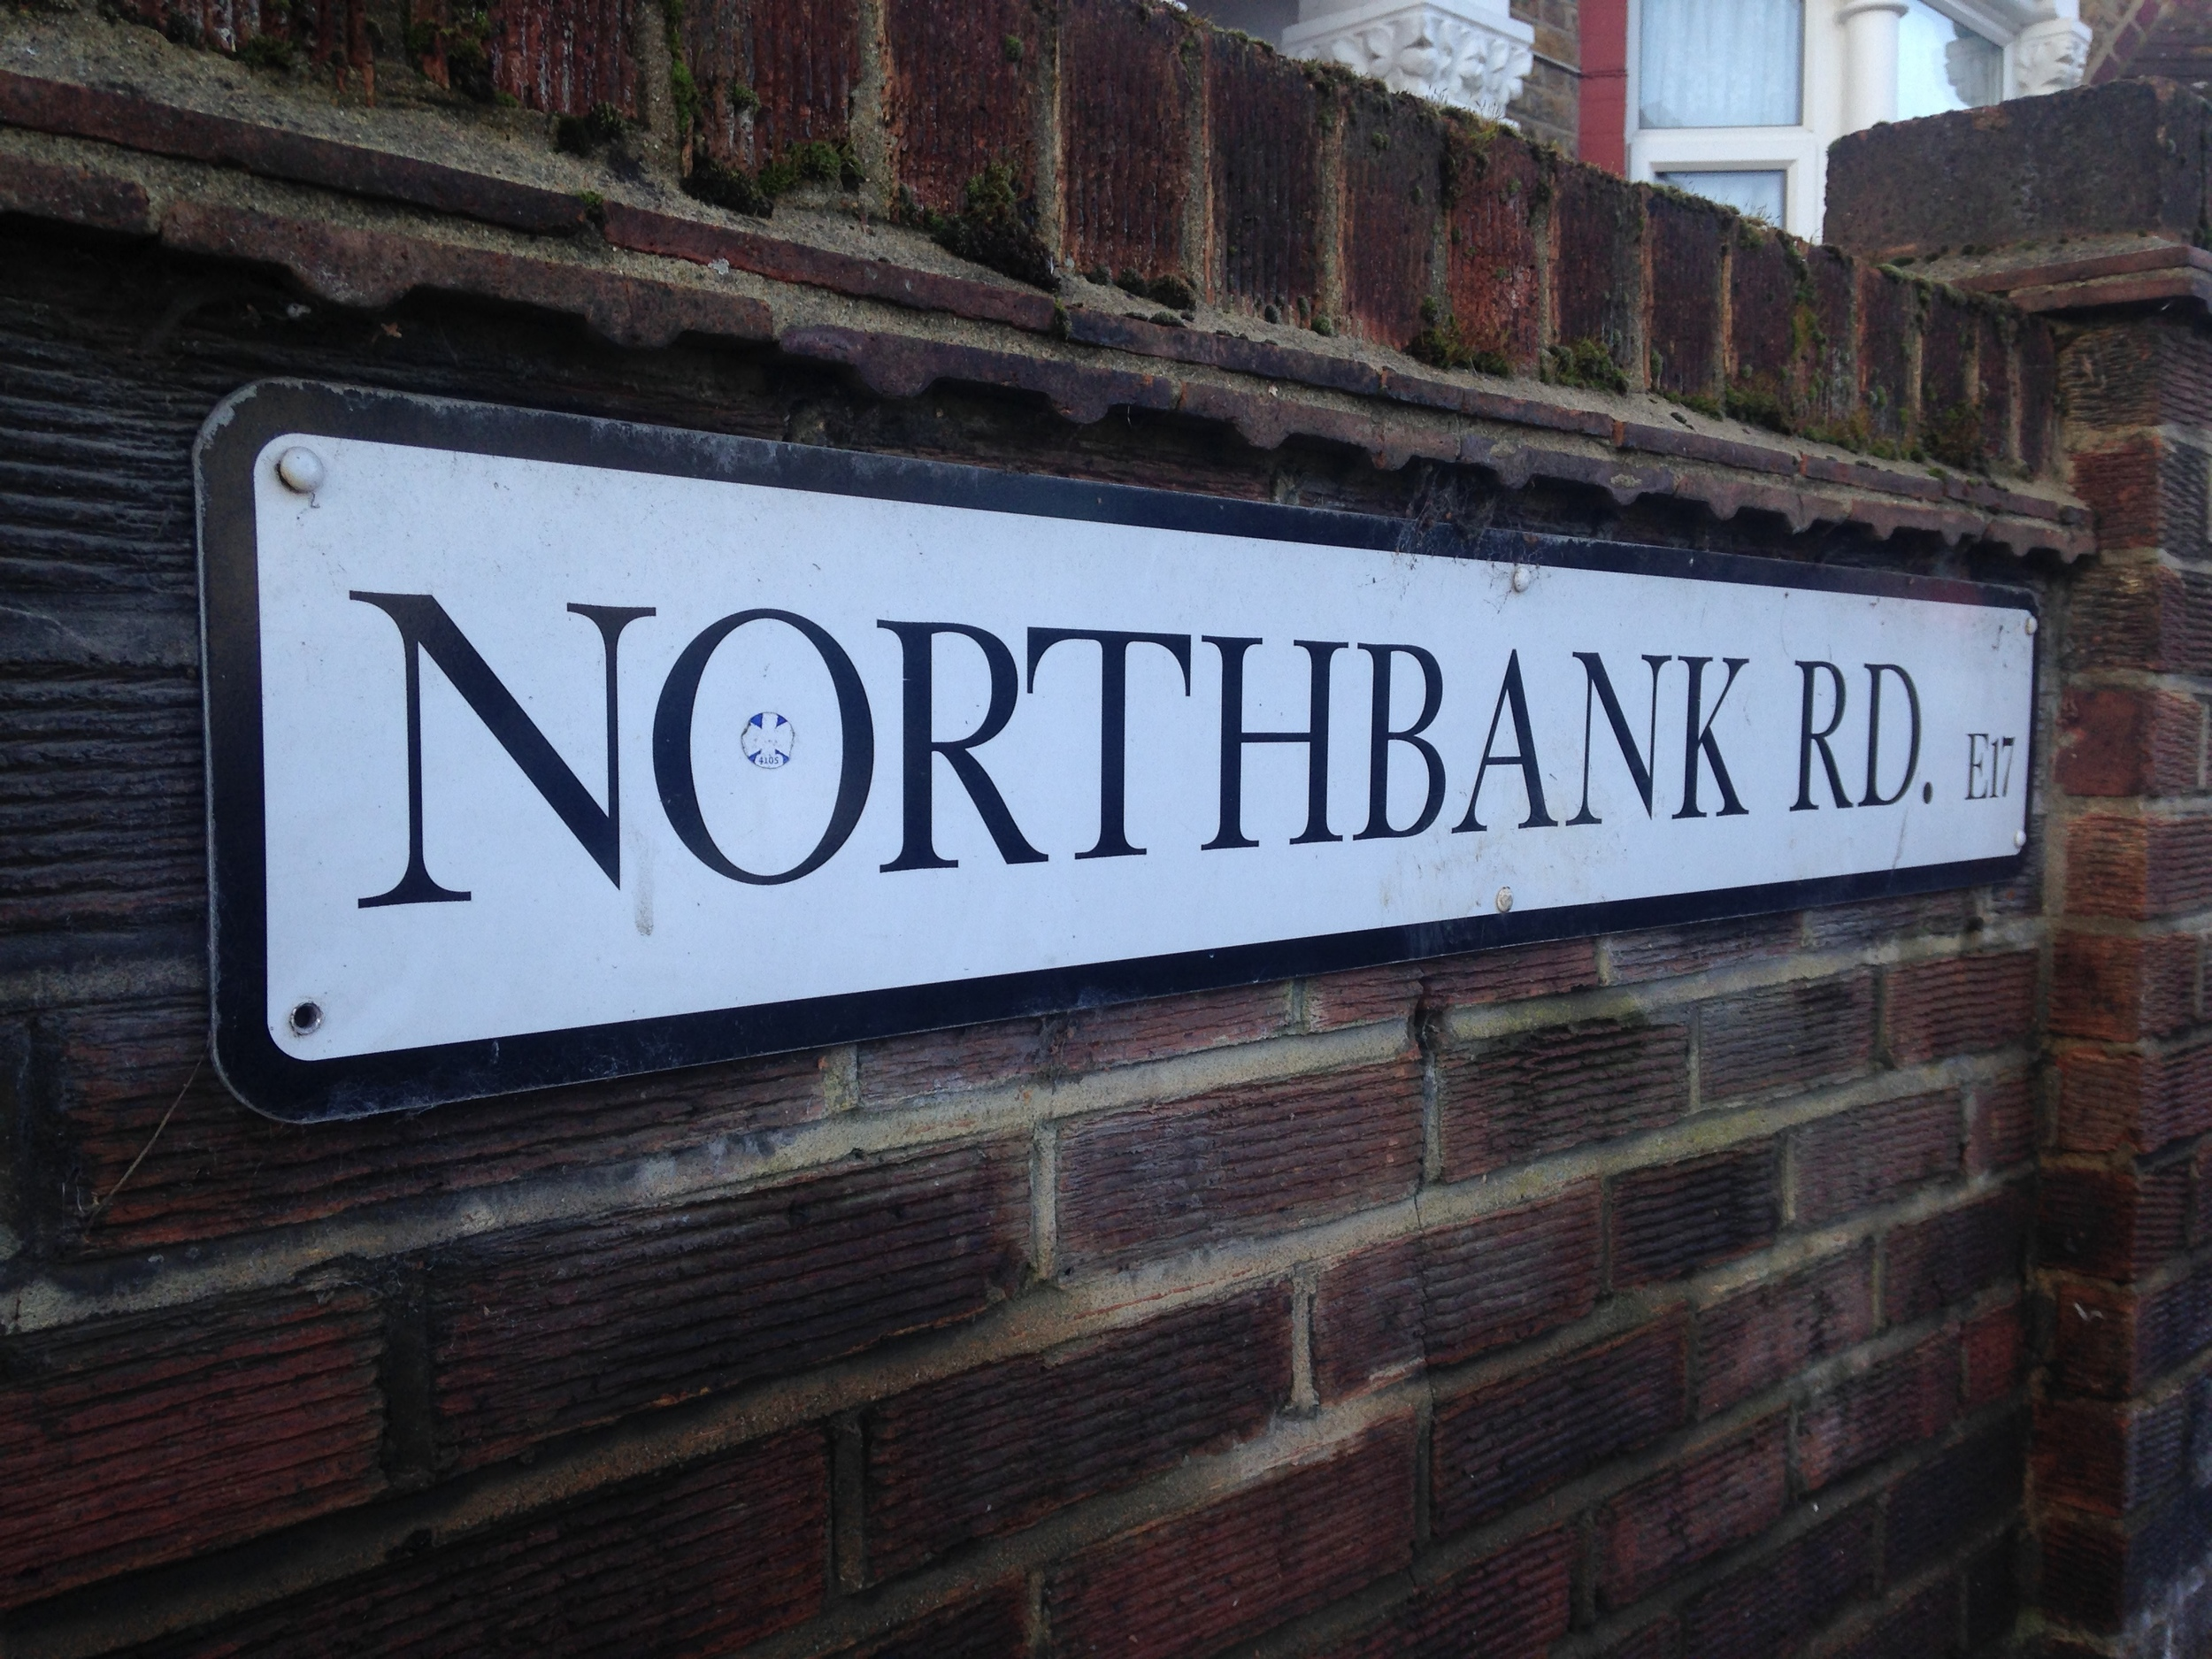 Northbank Road. The place where dreams are made...